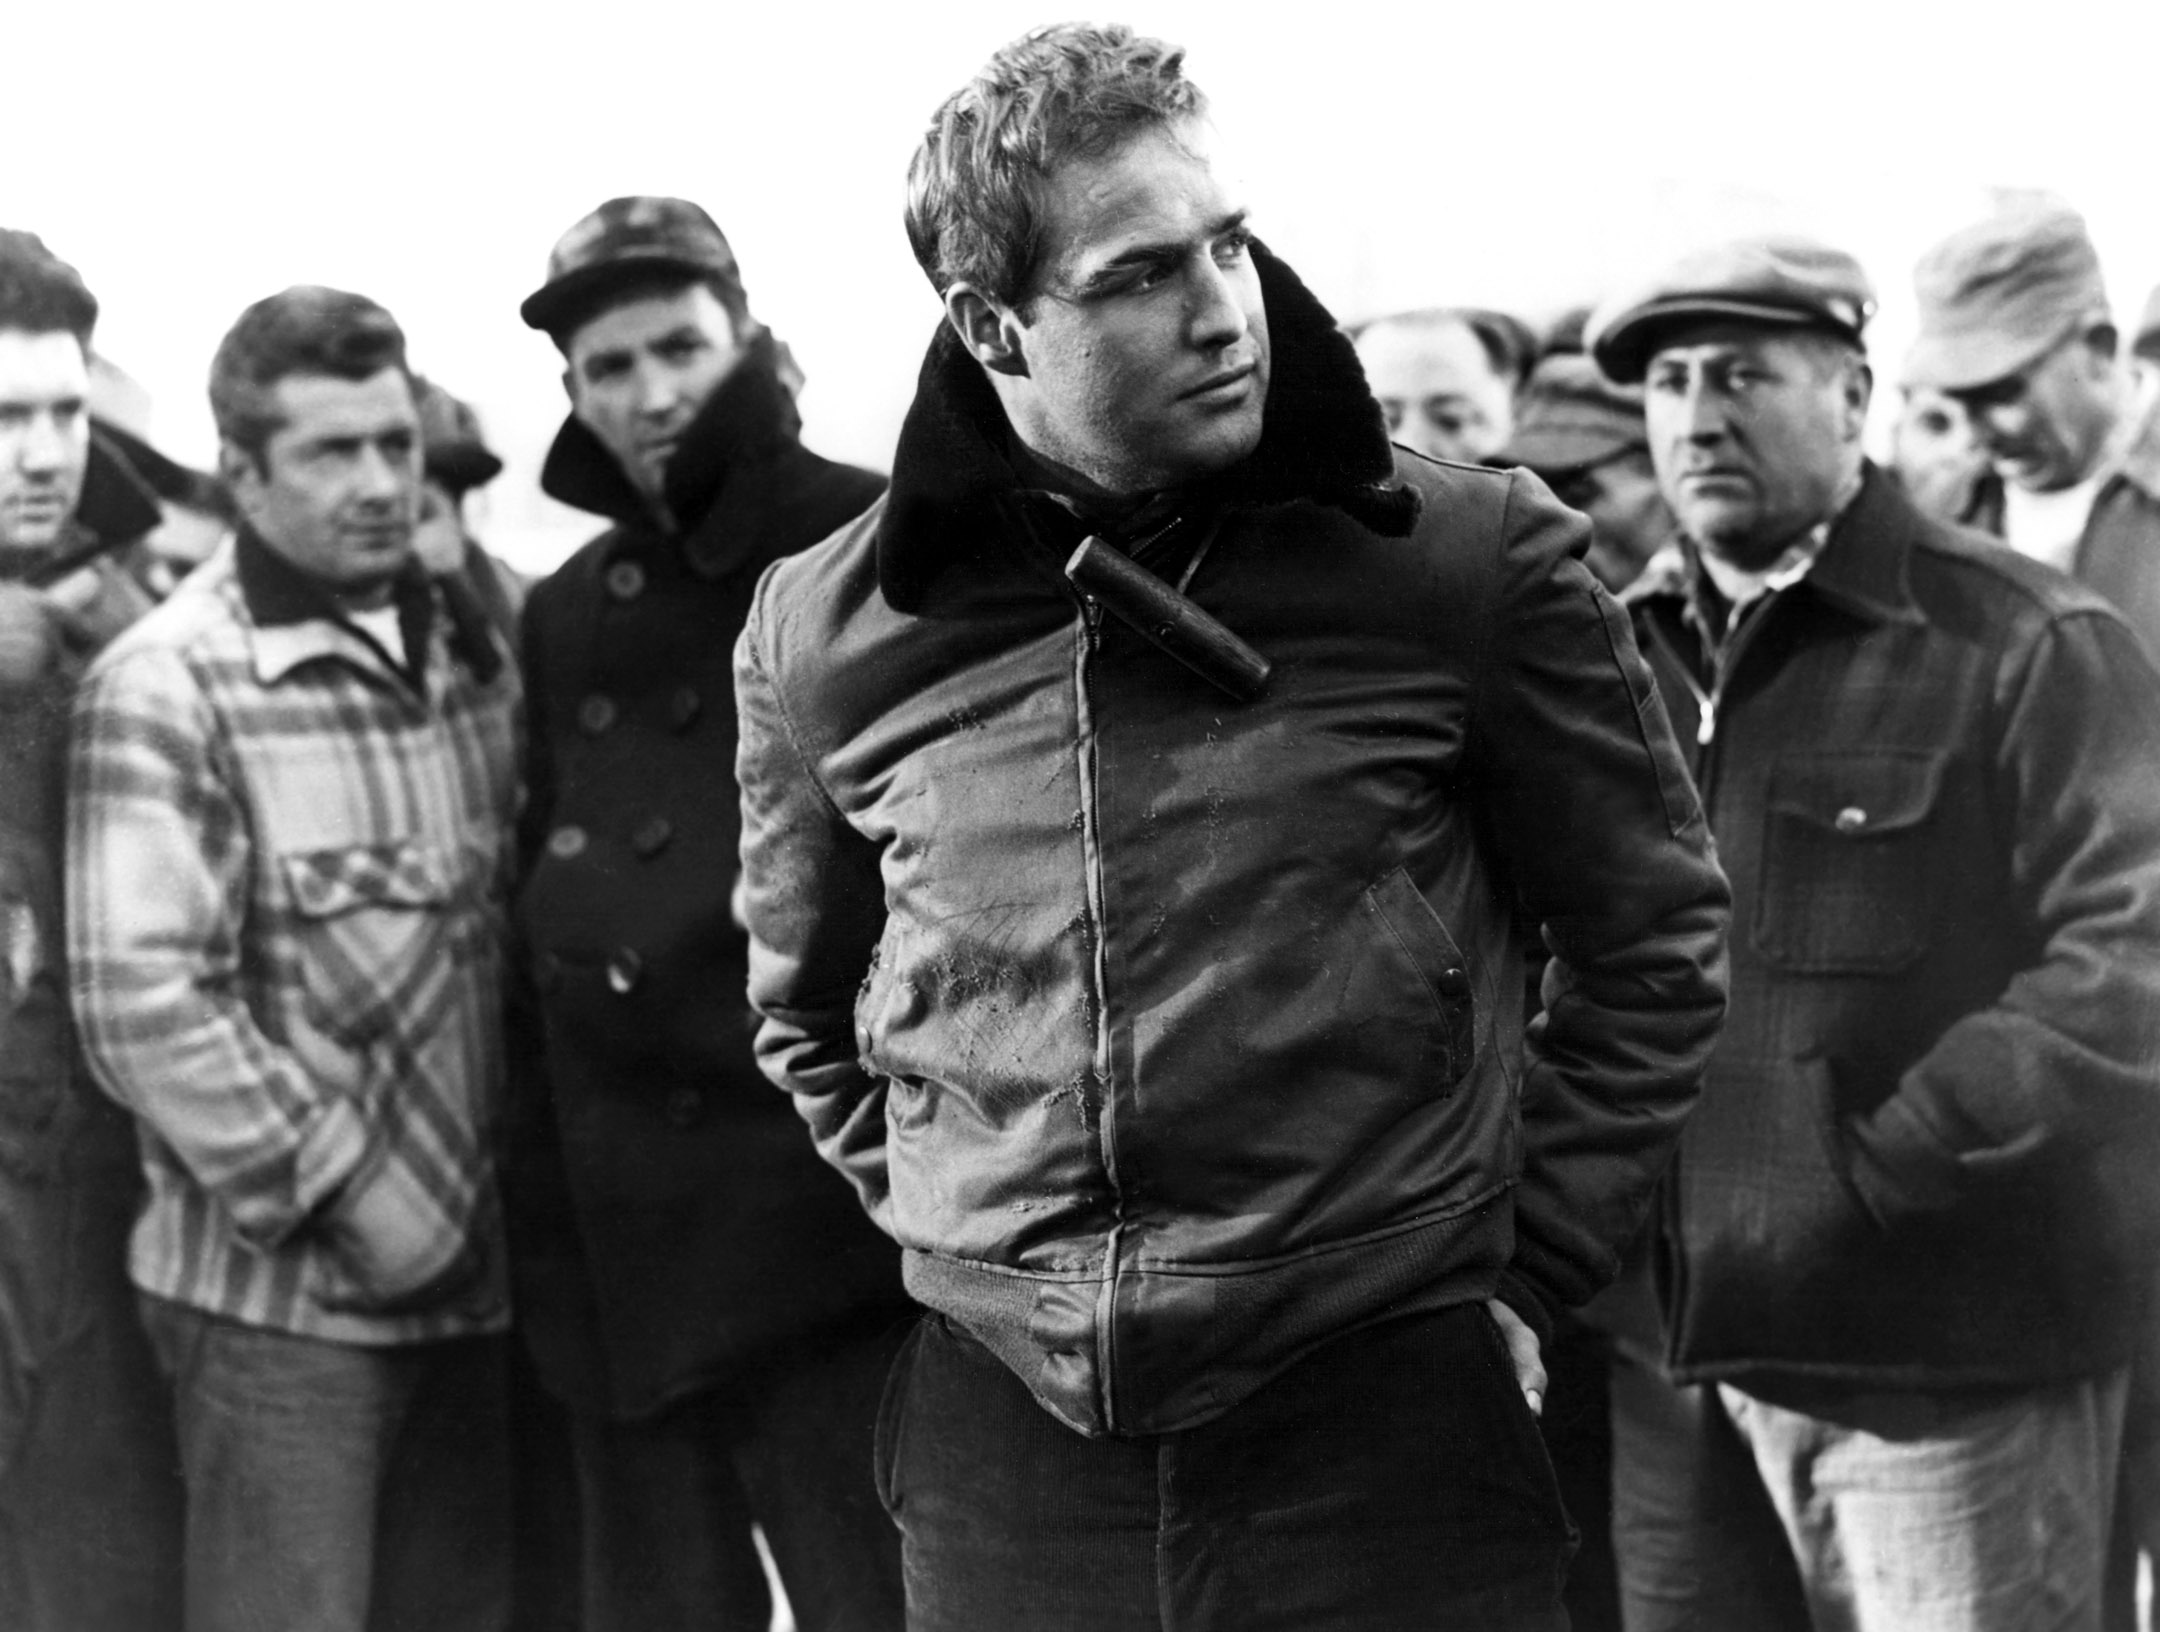 National Philharmonic: On the Waterfront Film with Live Orchestra